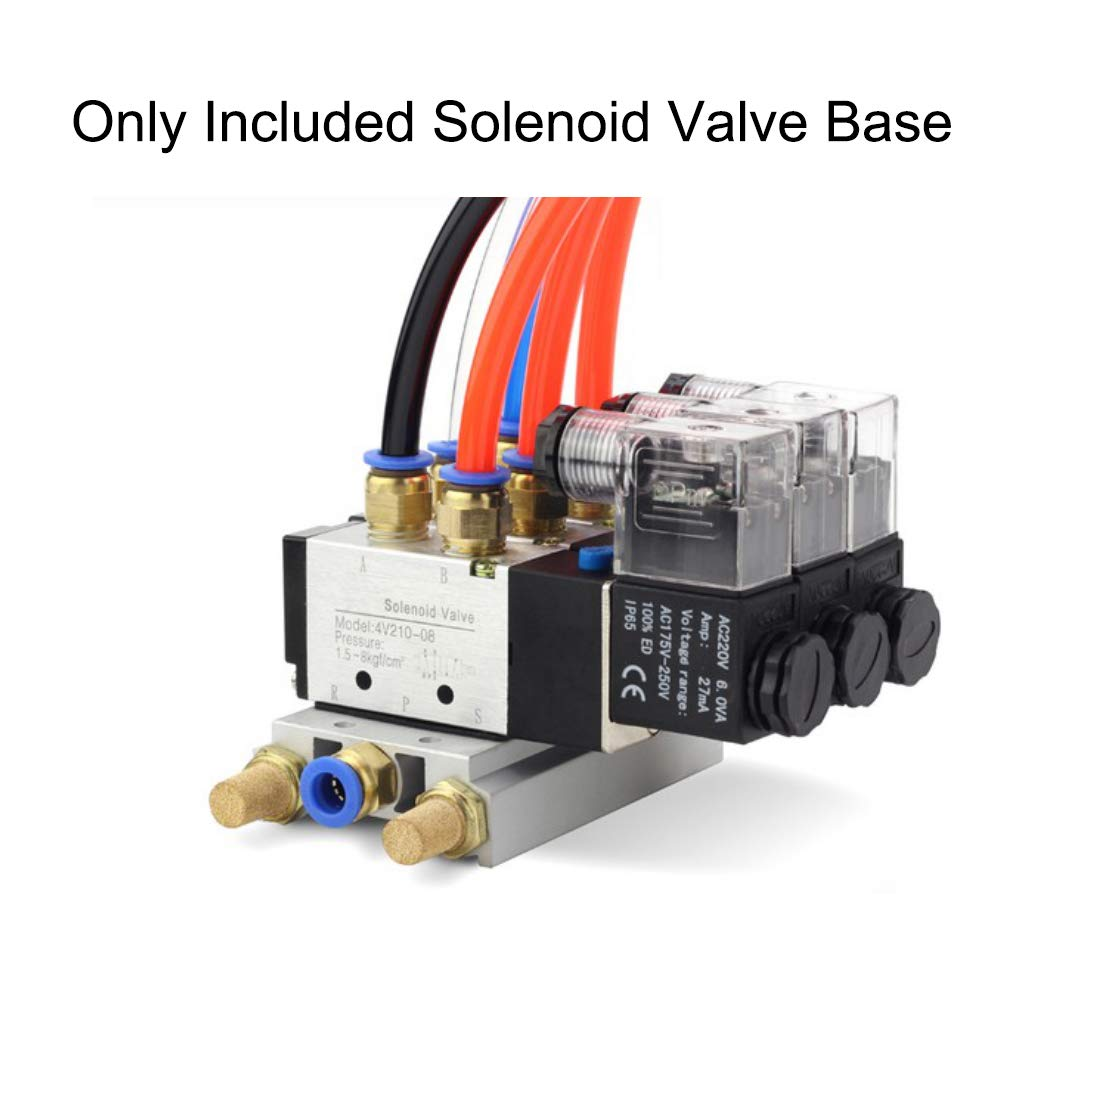 uxcell 1//4 inches PT Thread 3 Row Aluminum Manifold Solenoid Air Pneumatic Valve Base Socket for 4V210 Series